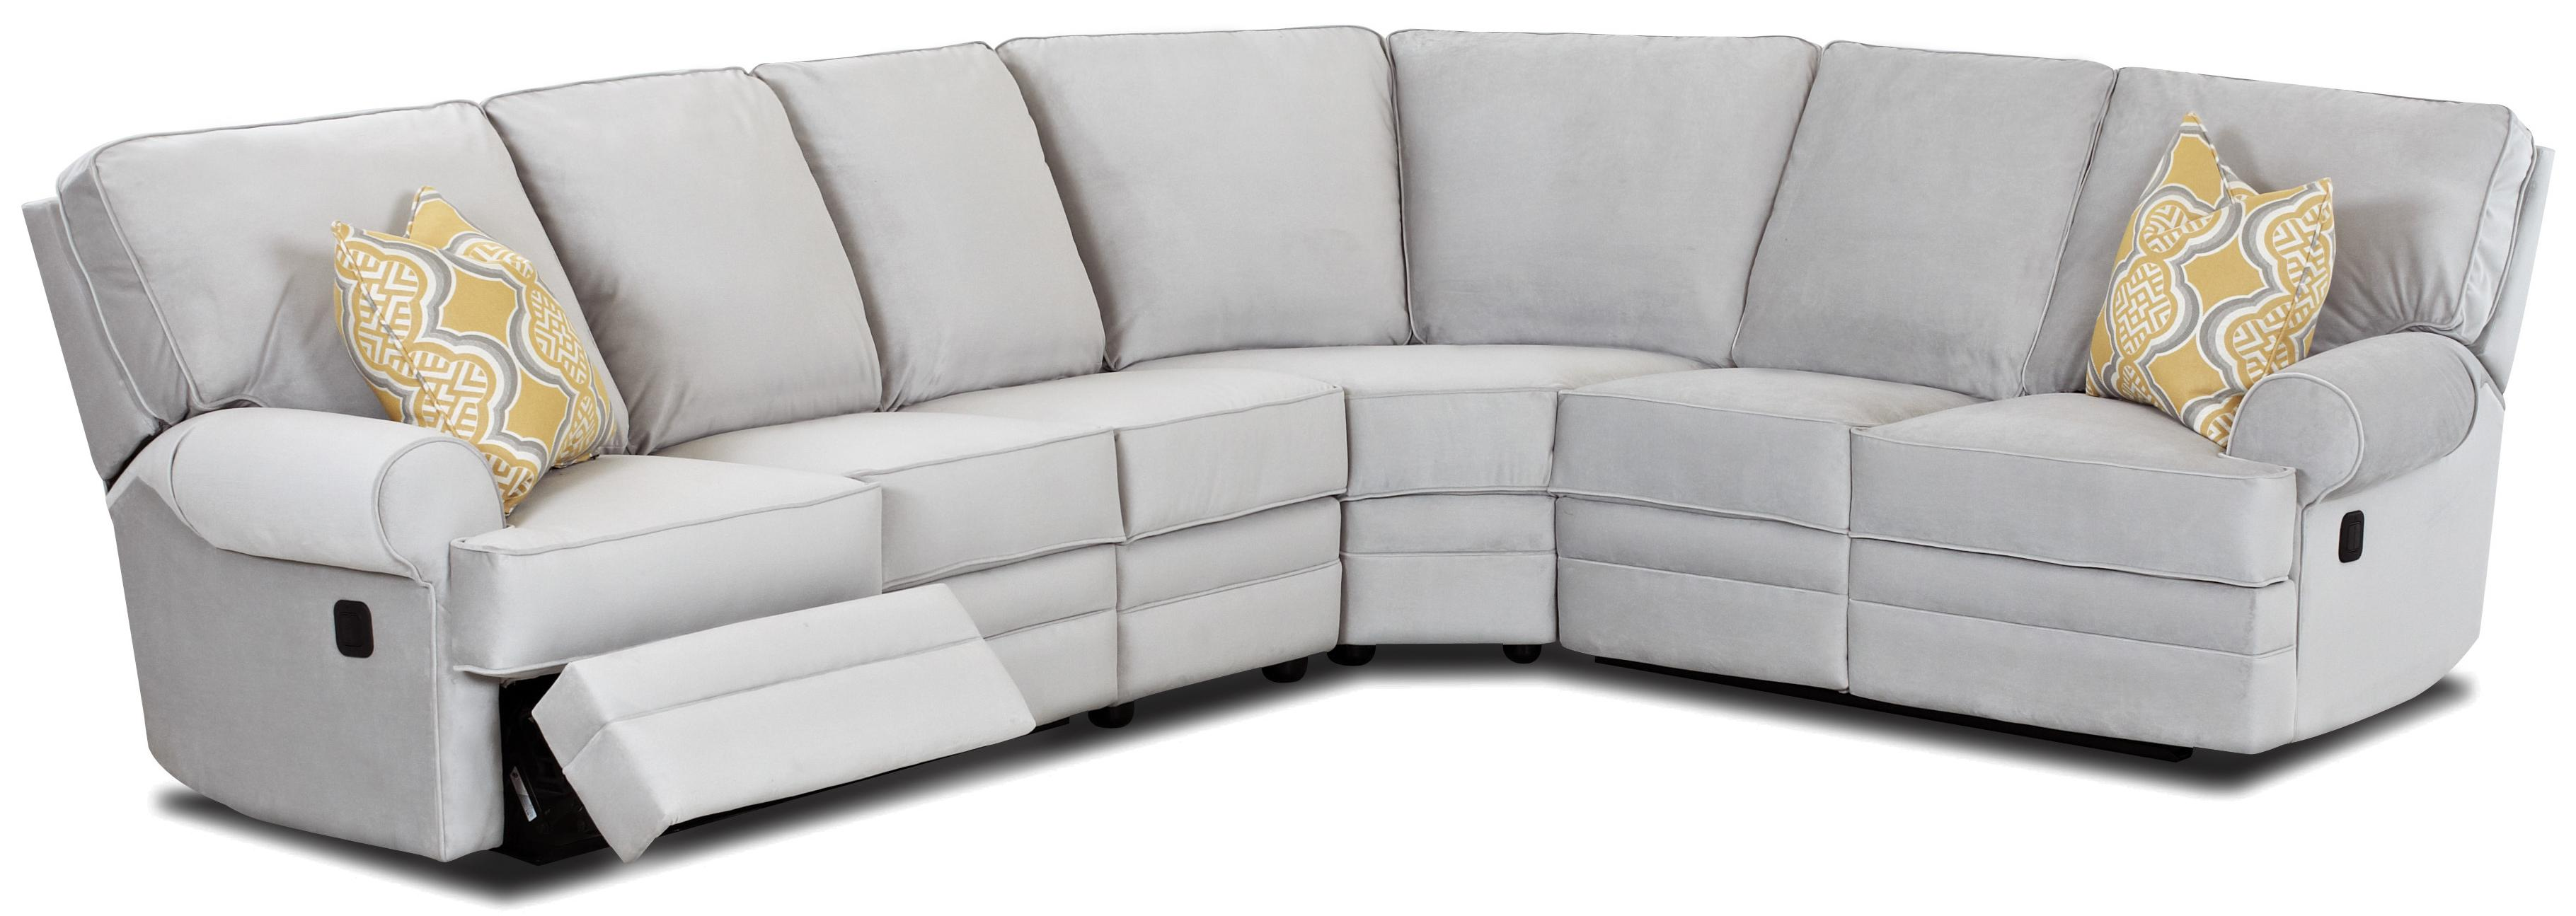 loveseat recliner sofa klaussner corner reclining seller sectional sleeper phoenix by and top with